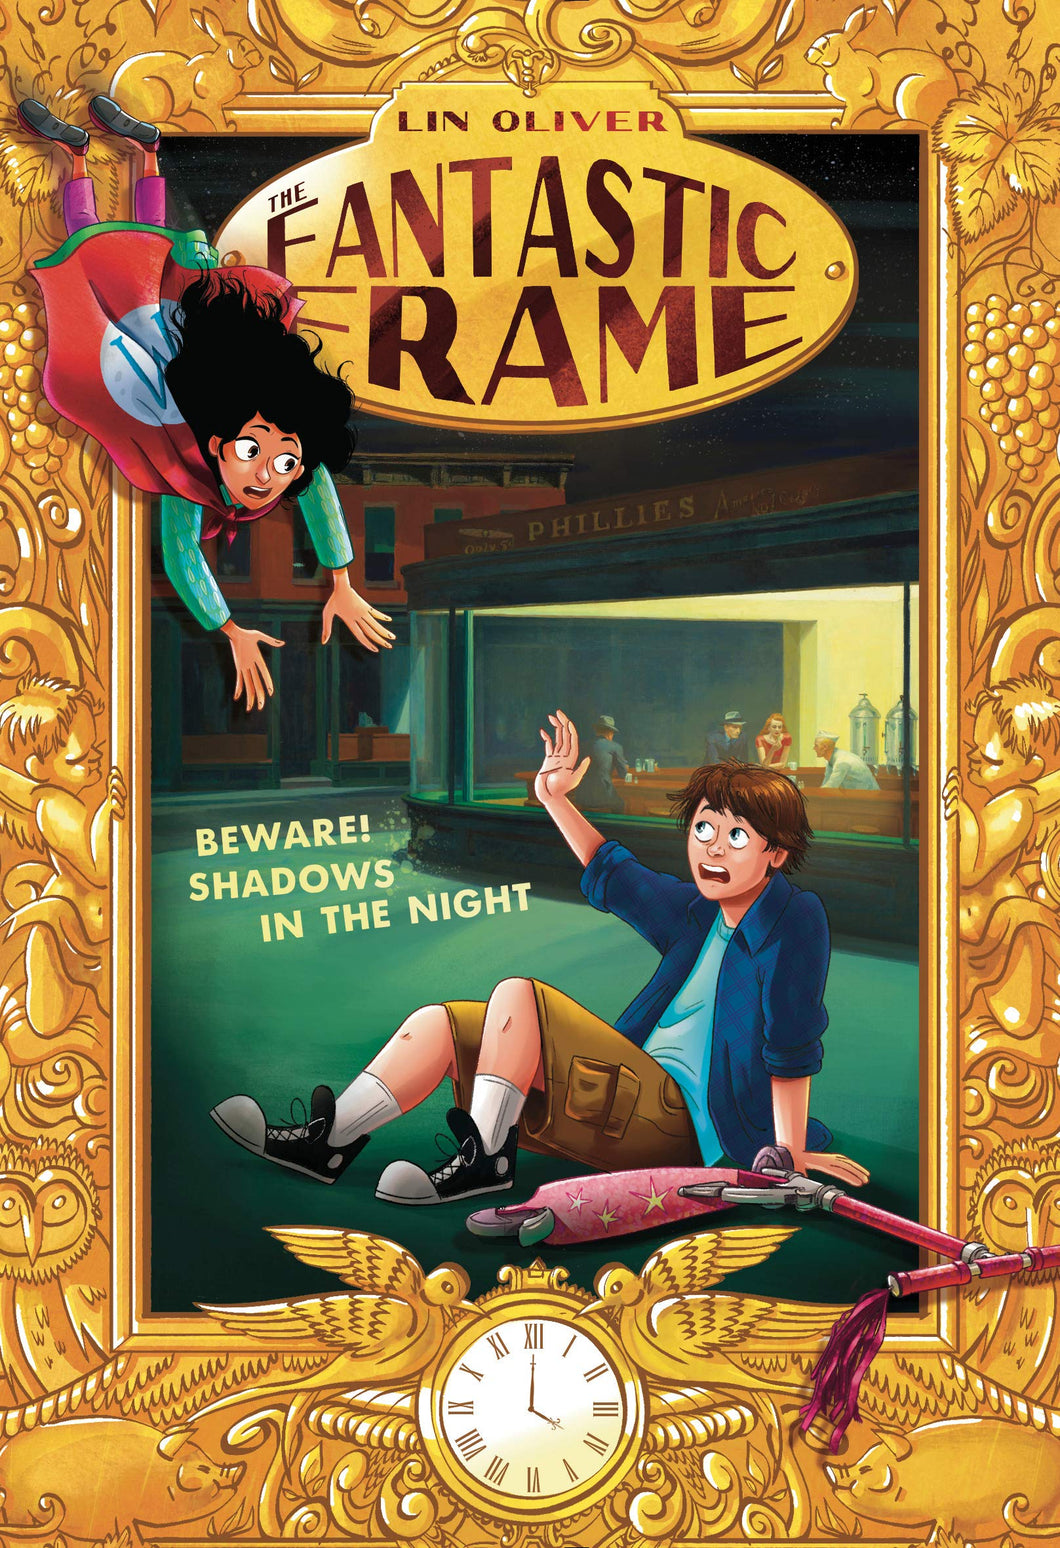 Beware! Shadows in the Night (Fantastic Frame Book 3)